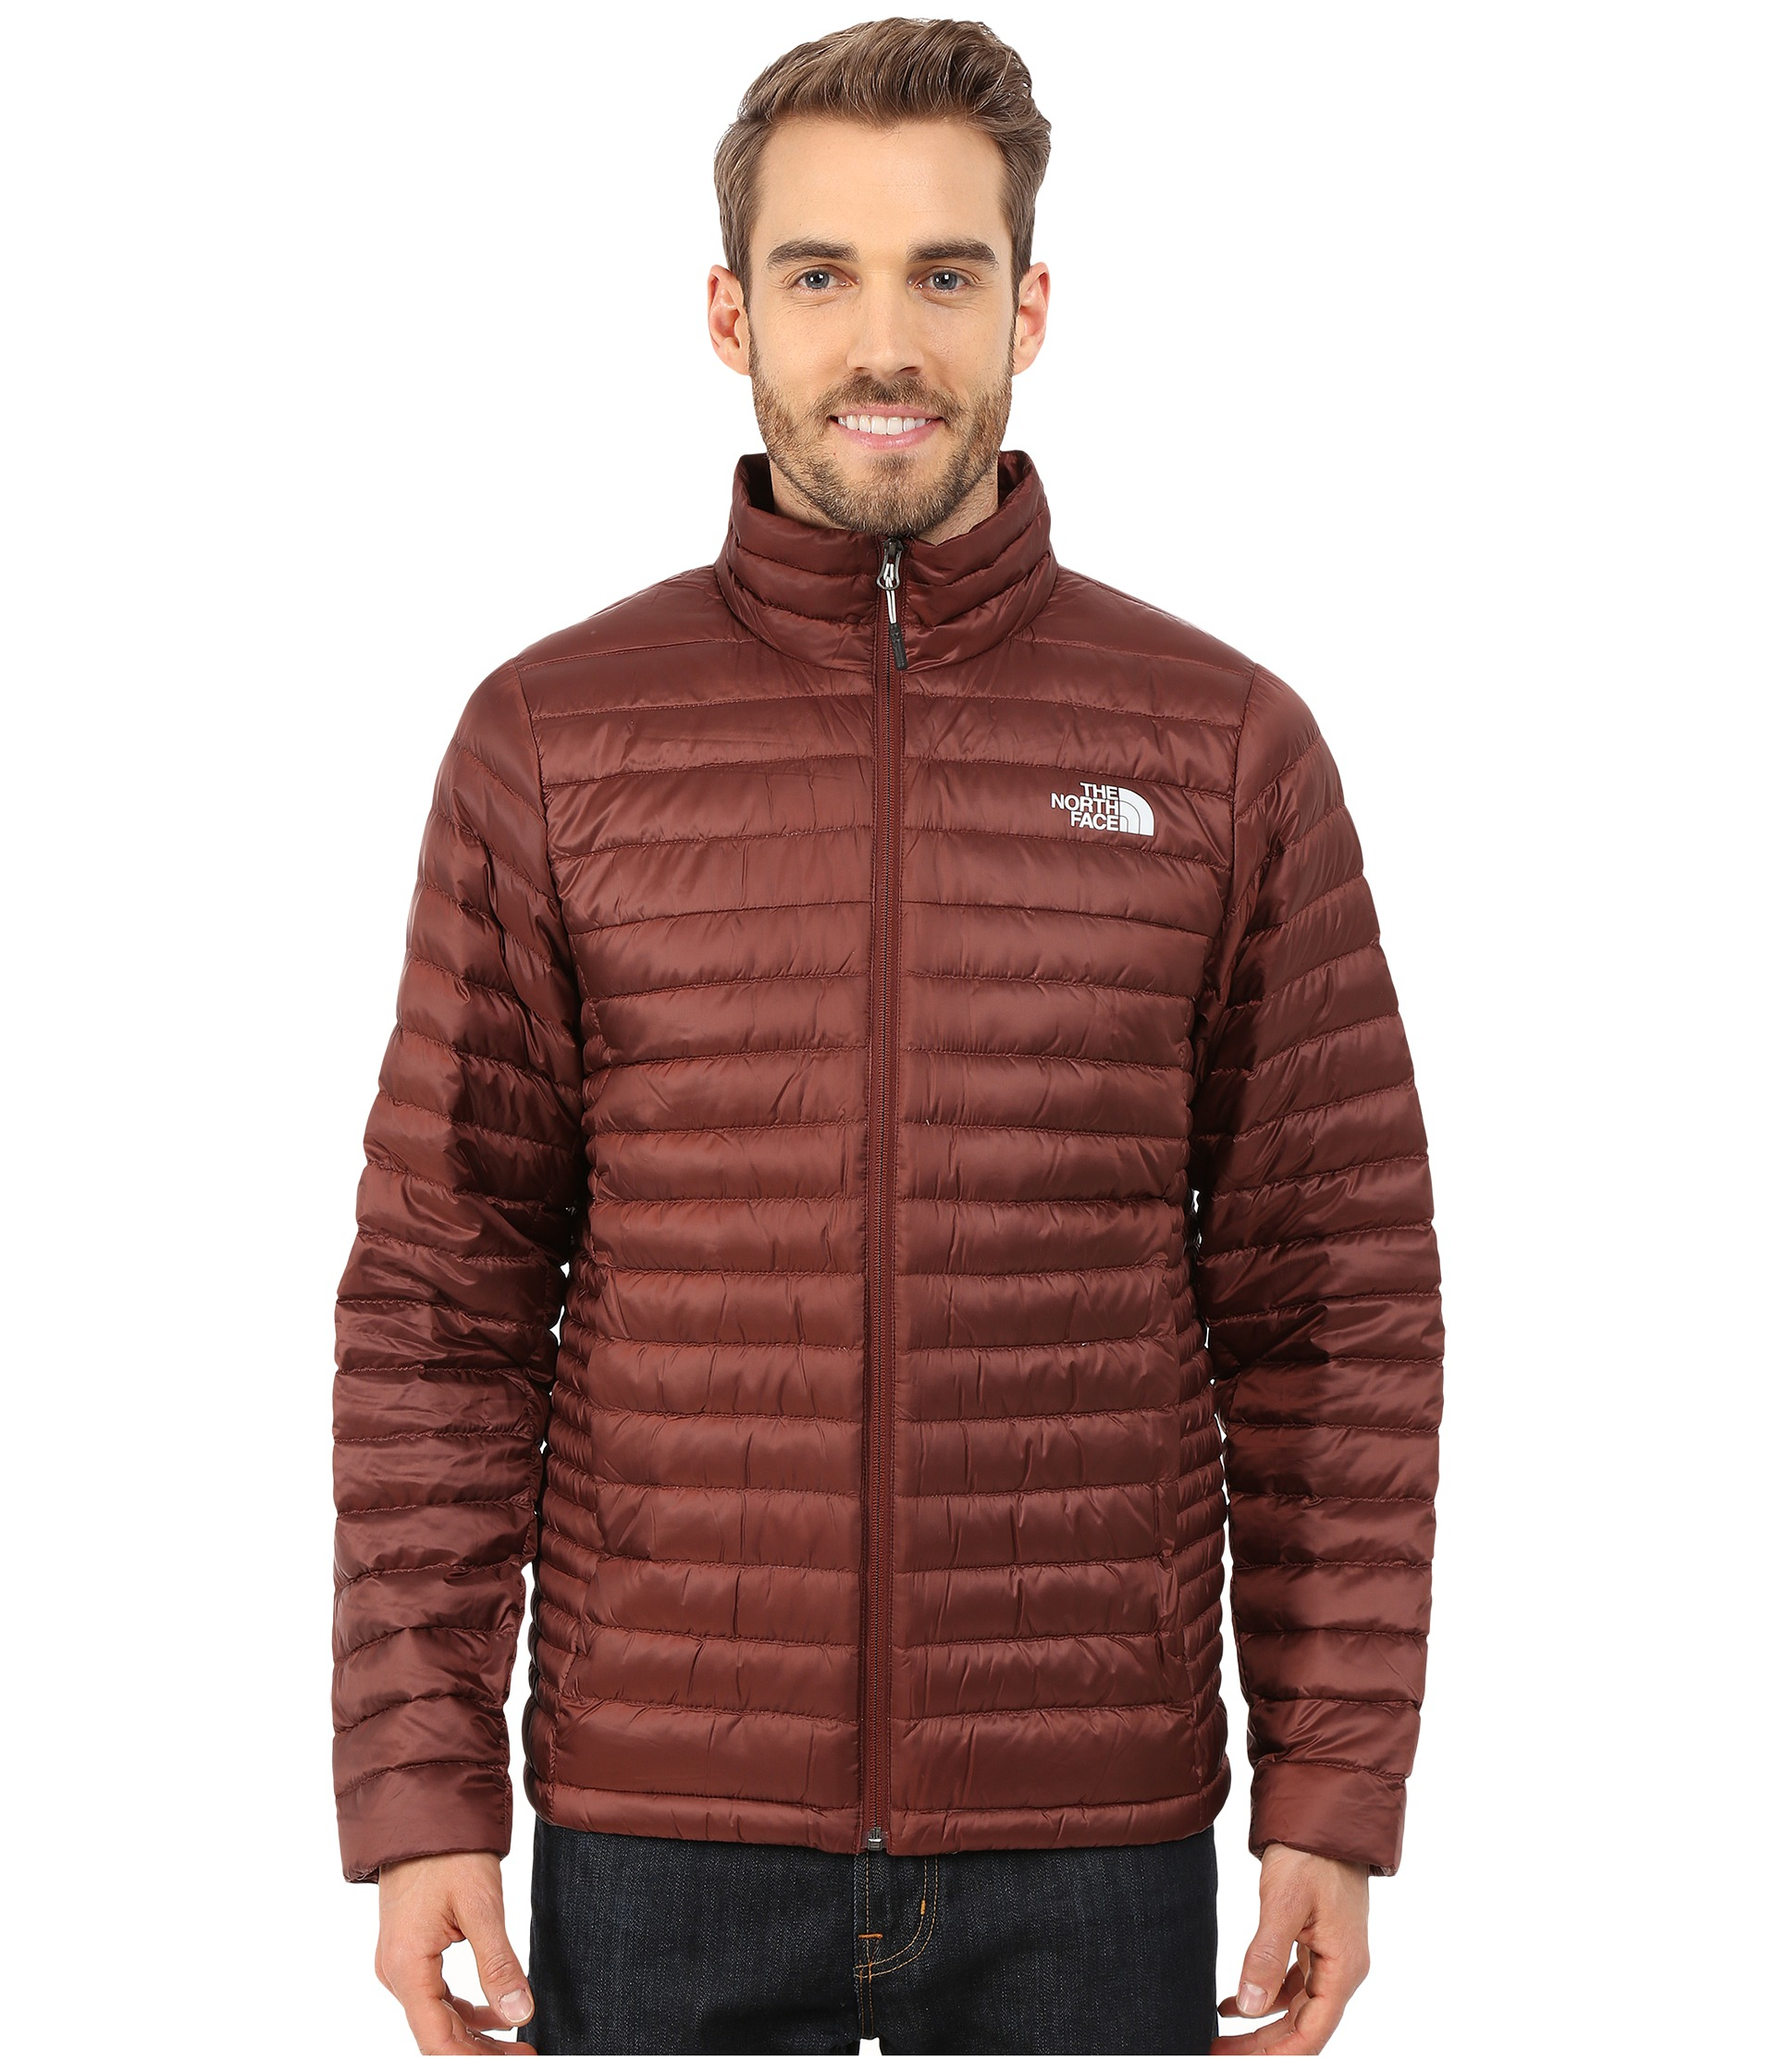 071f2ed55a56 ... The north face Tonnerro Jacket in Red Lyst ...